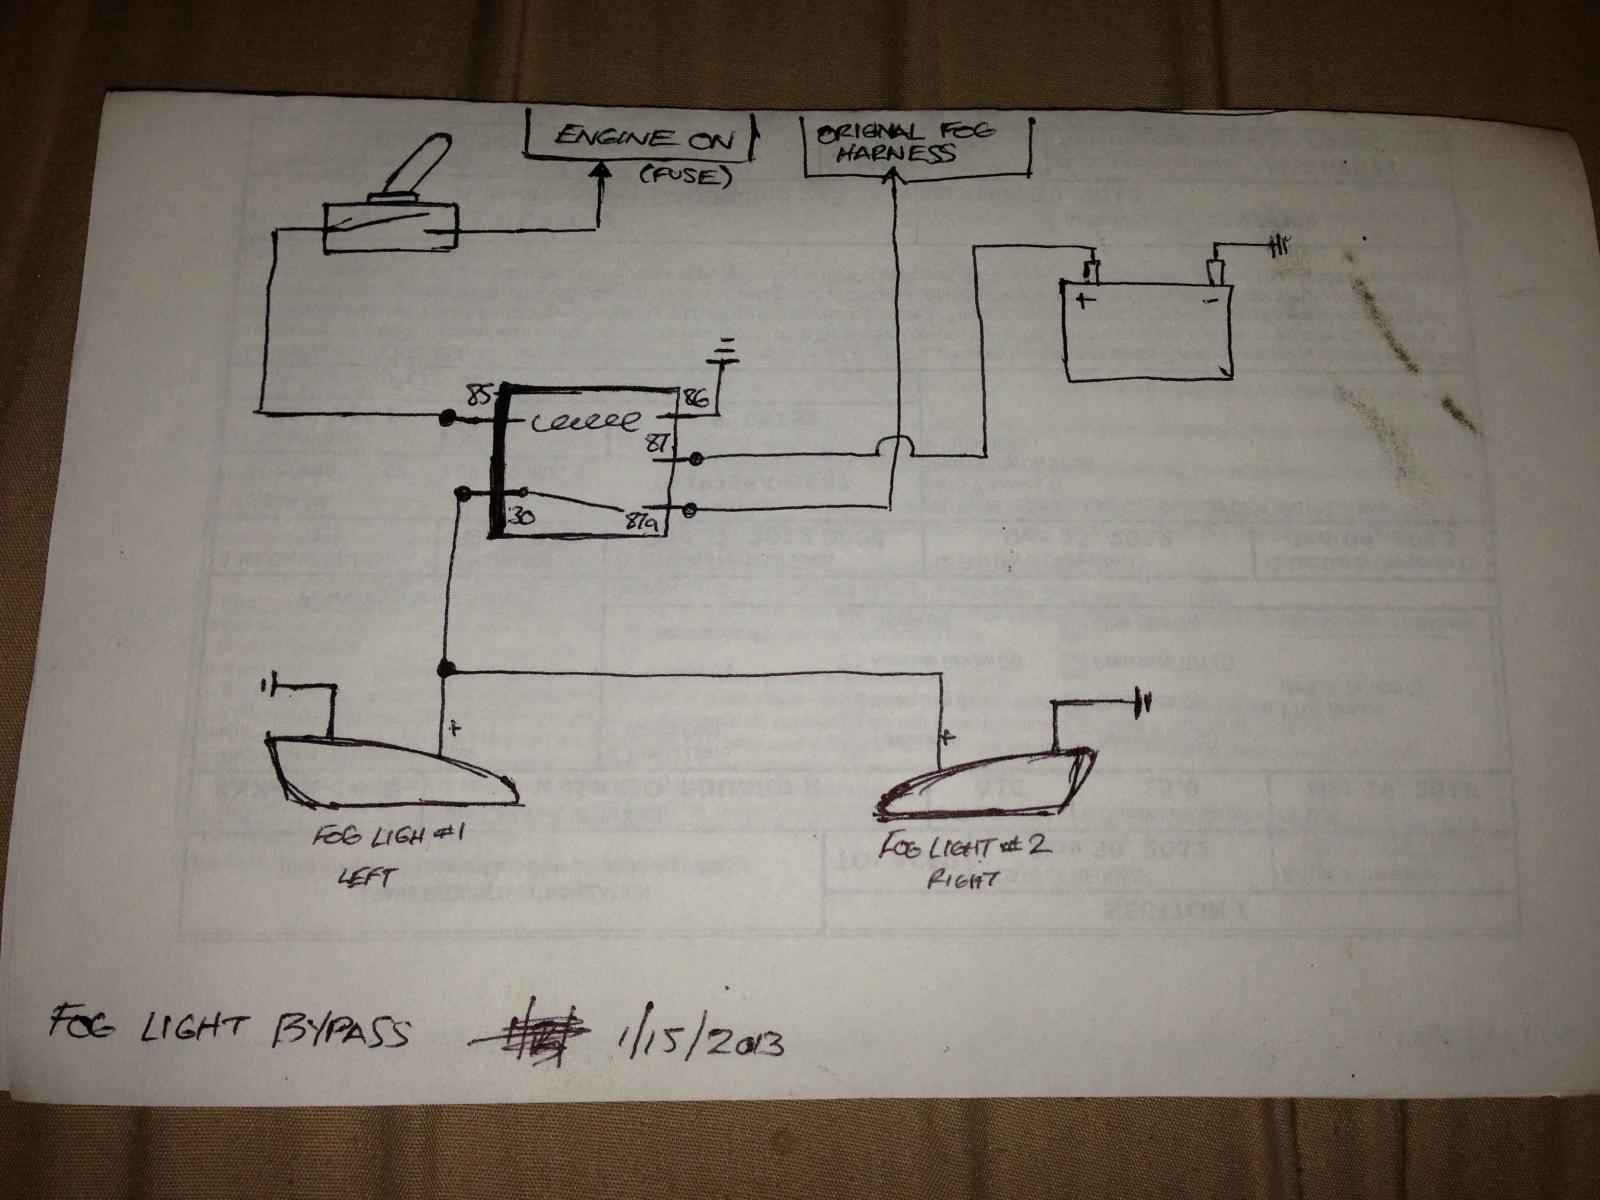 Kia Venga Wiring Diagram Library Honda 125 For1987 Cdi Box Simple To Bypass Foglights Works W O Headlights Or Highbeams